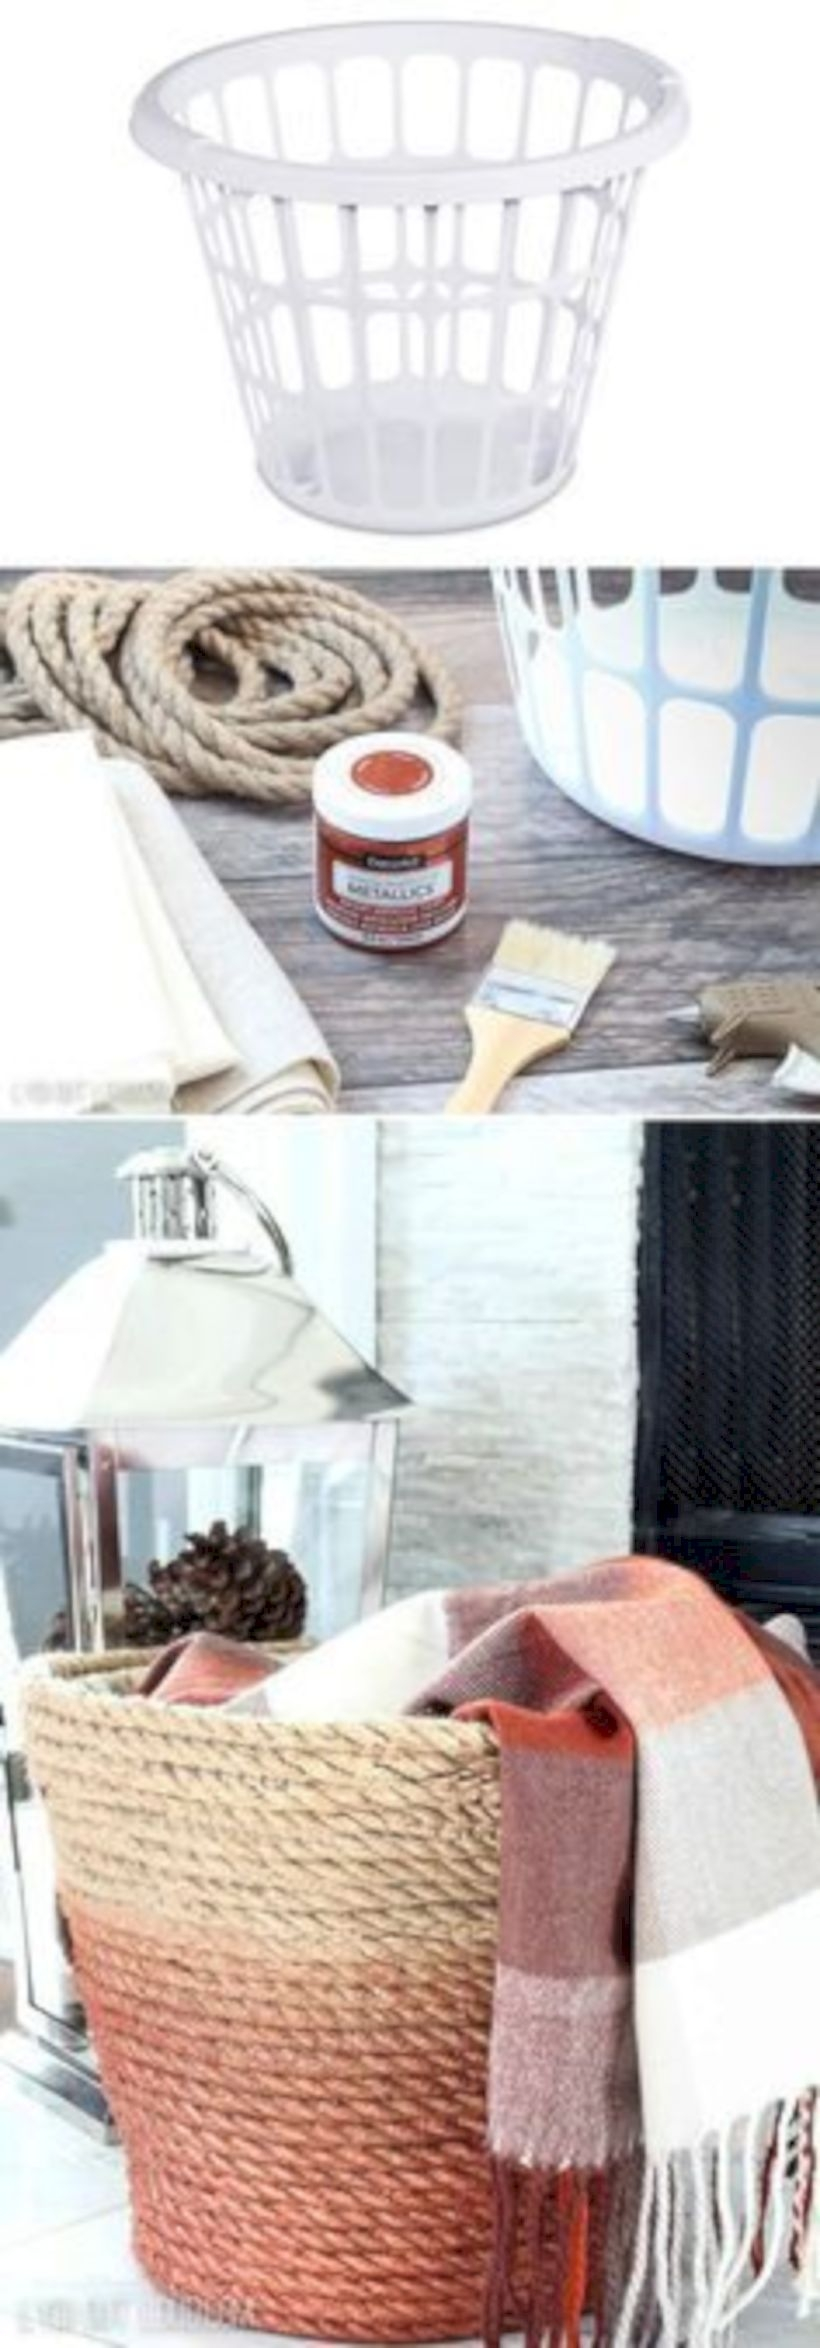 Remarkable projects and ideas to improve your home decor 38